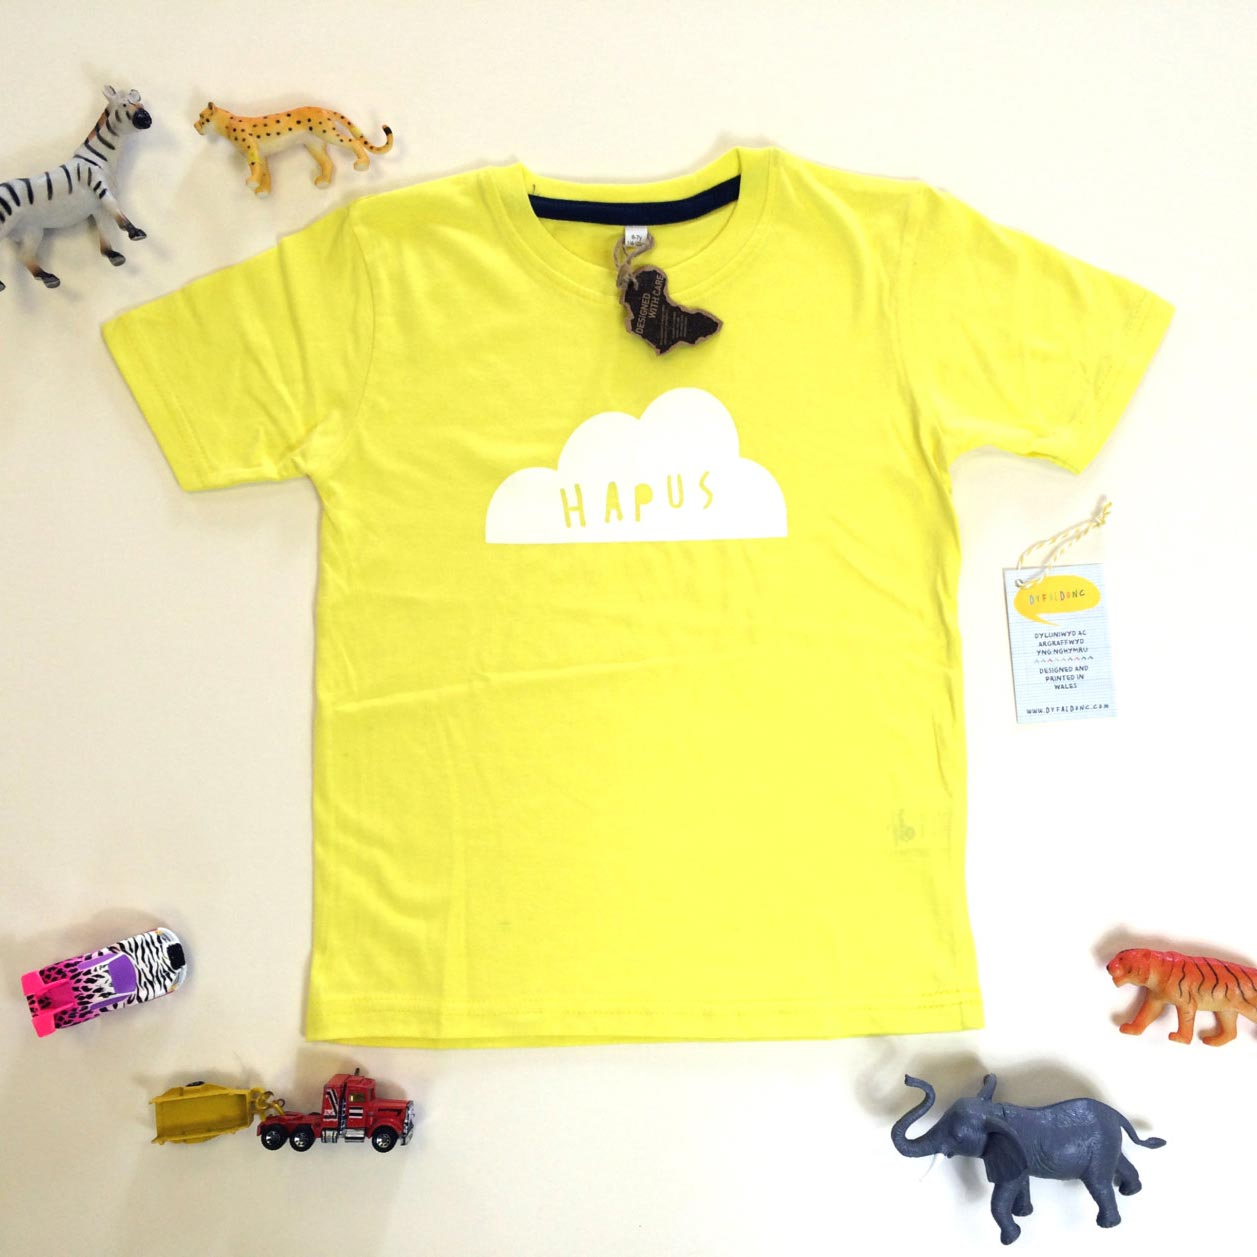 T-shirt - Baby / Toddler - Happy - Hapus - Yellow